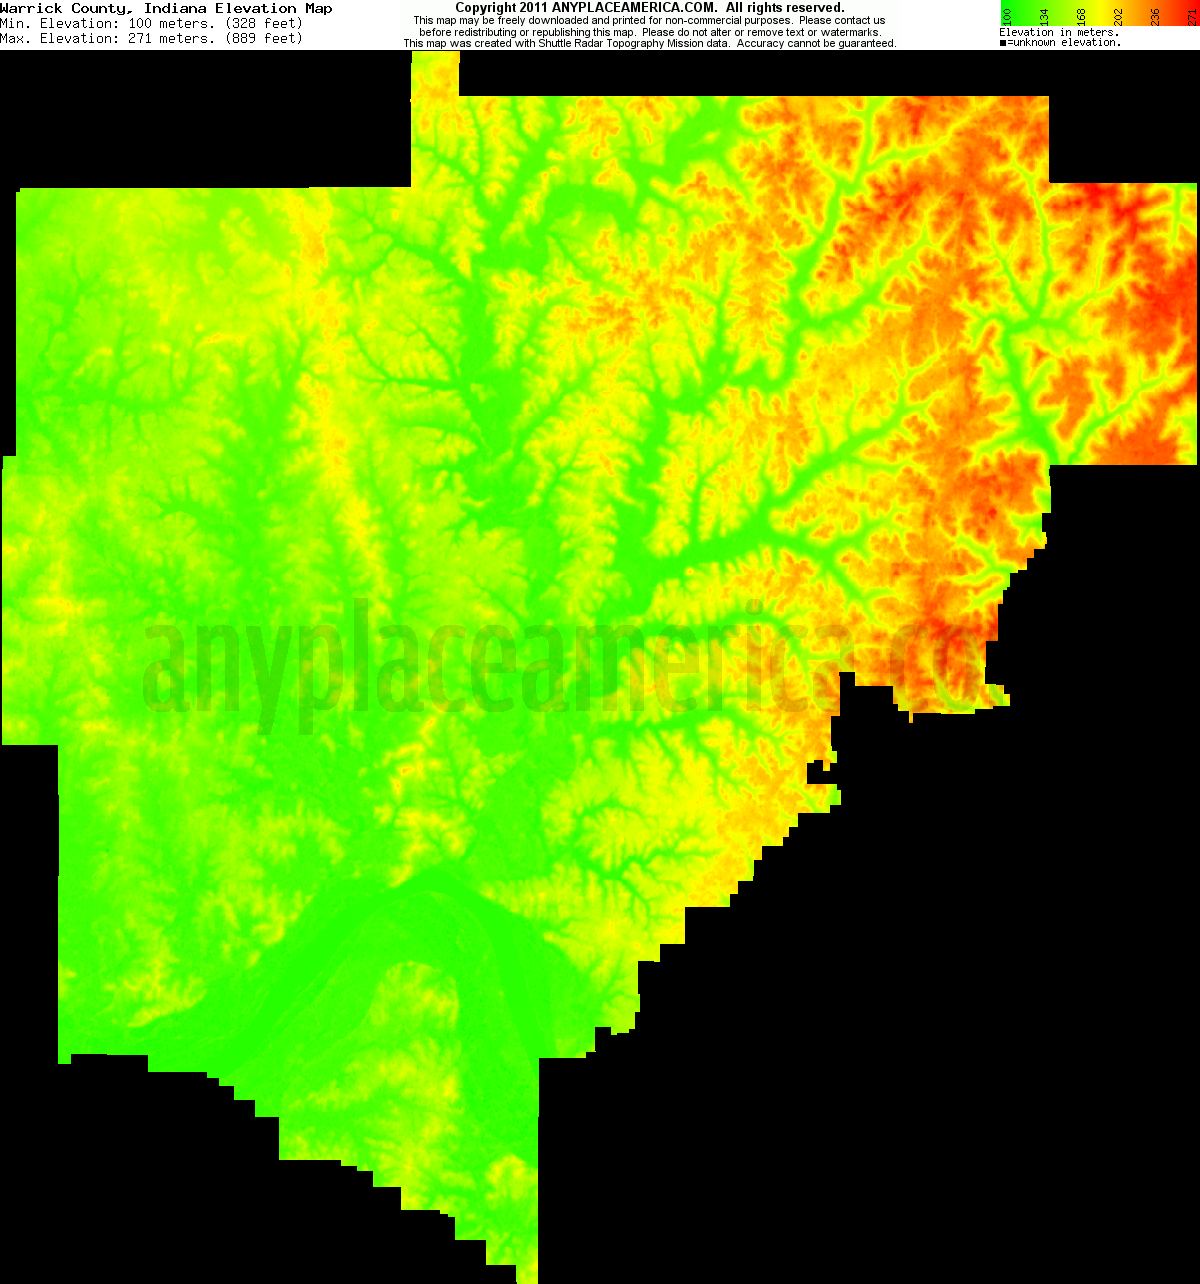 Free Warrick County Indiana Topo Maps Elevations - Elevation map us